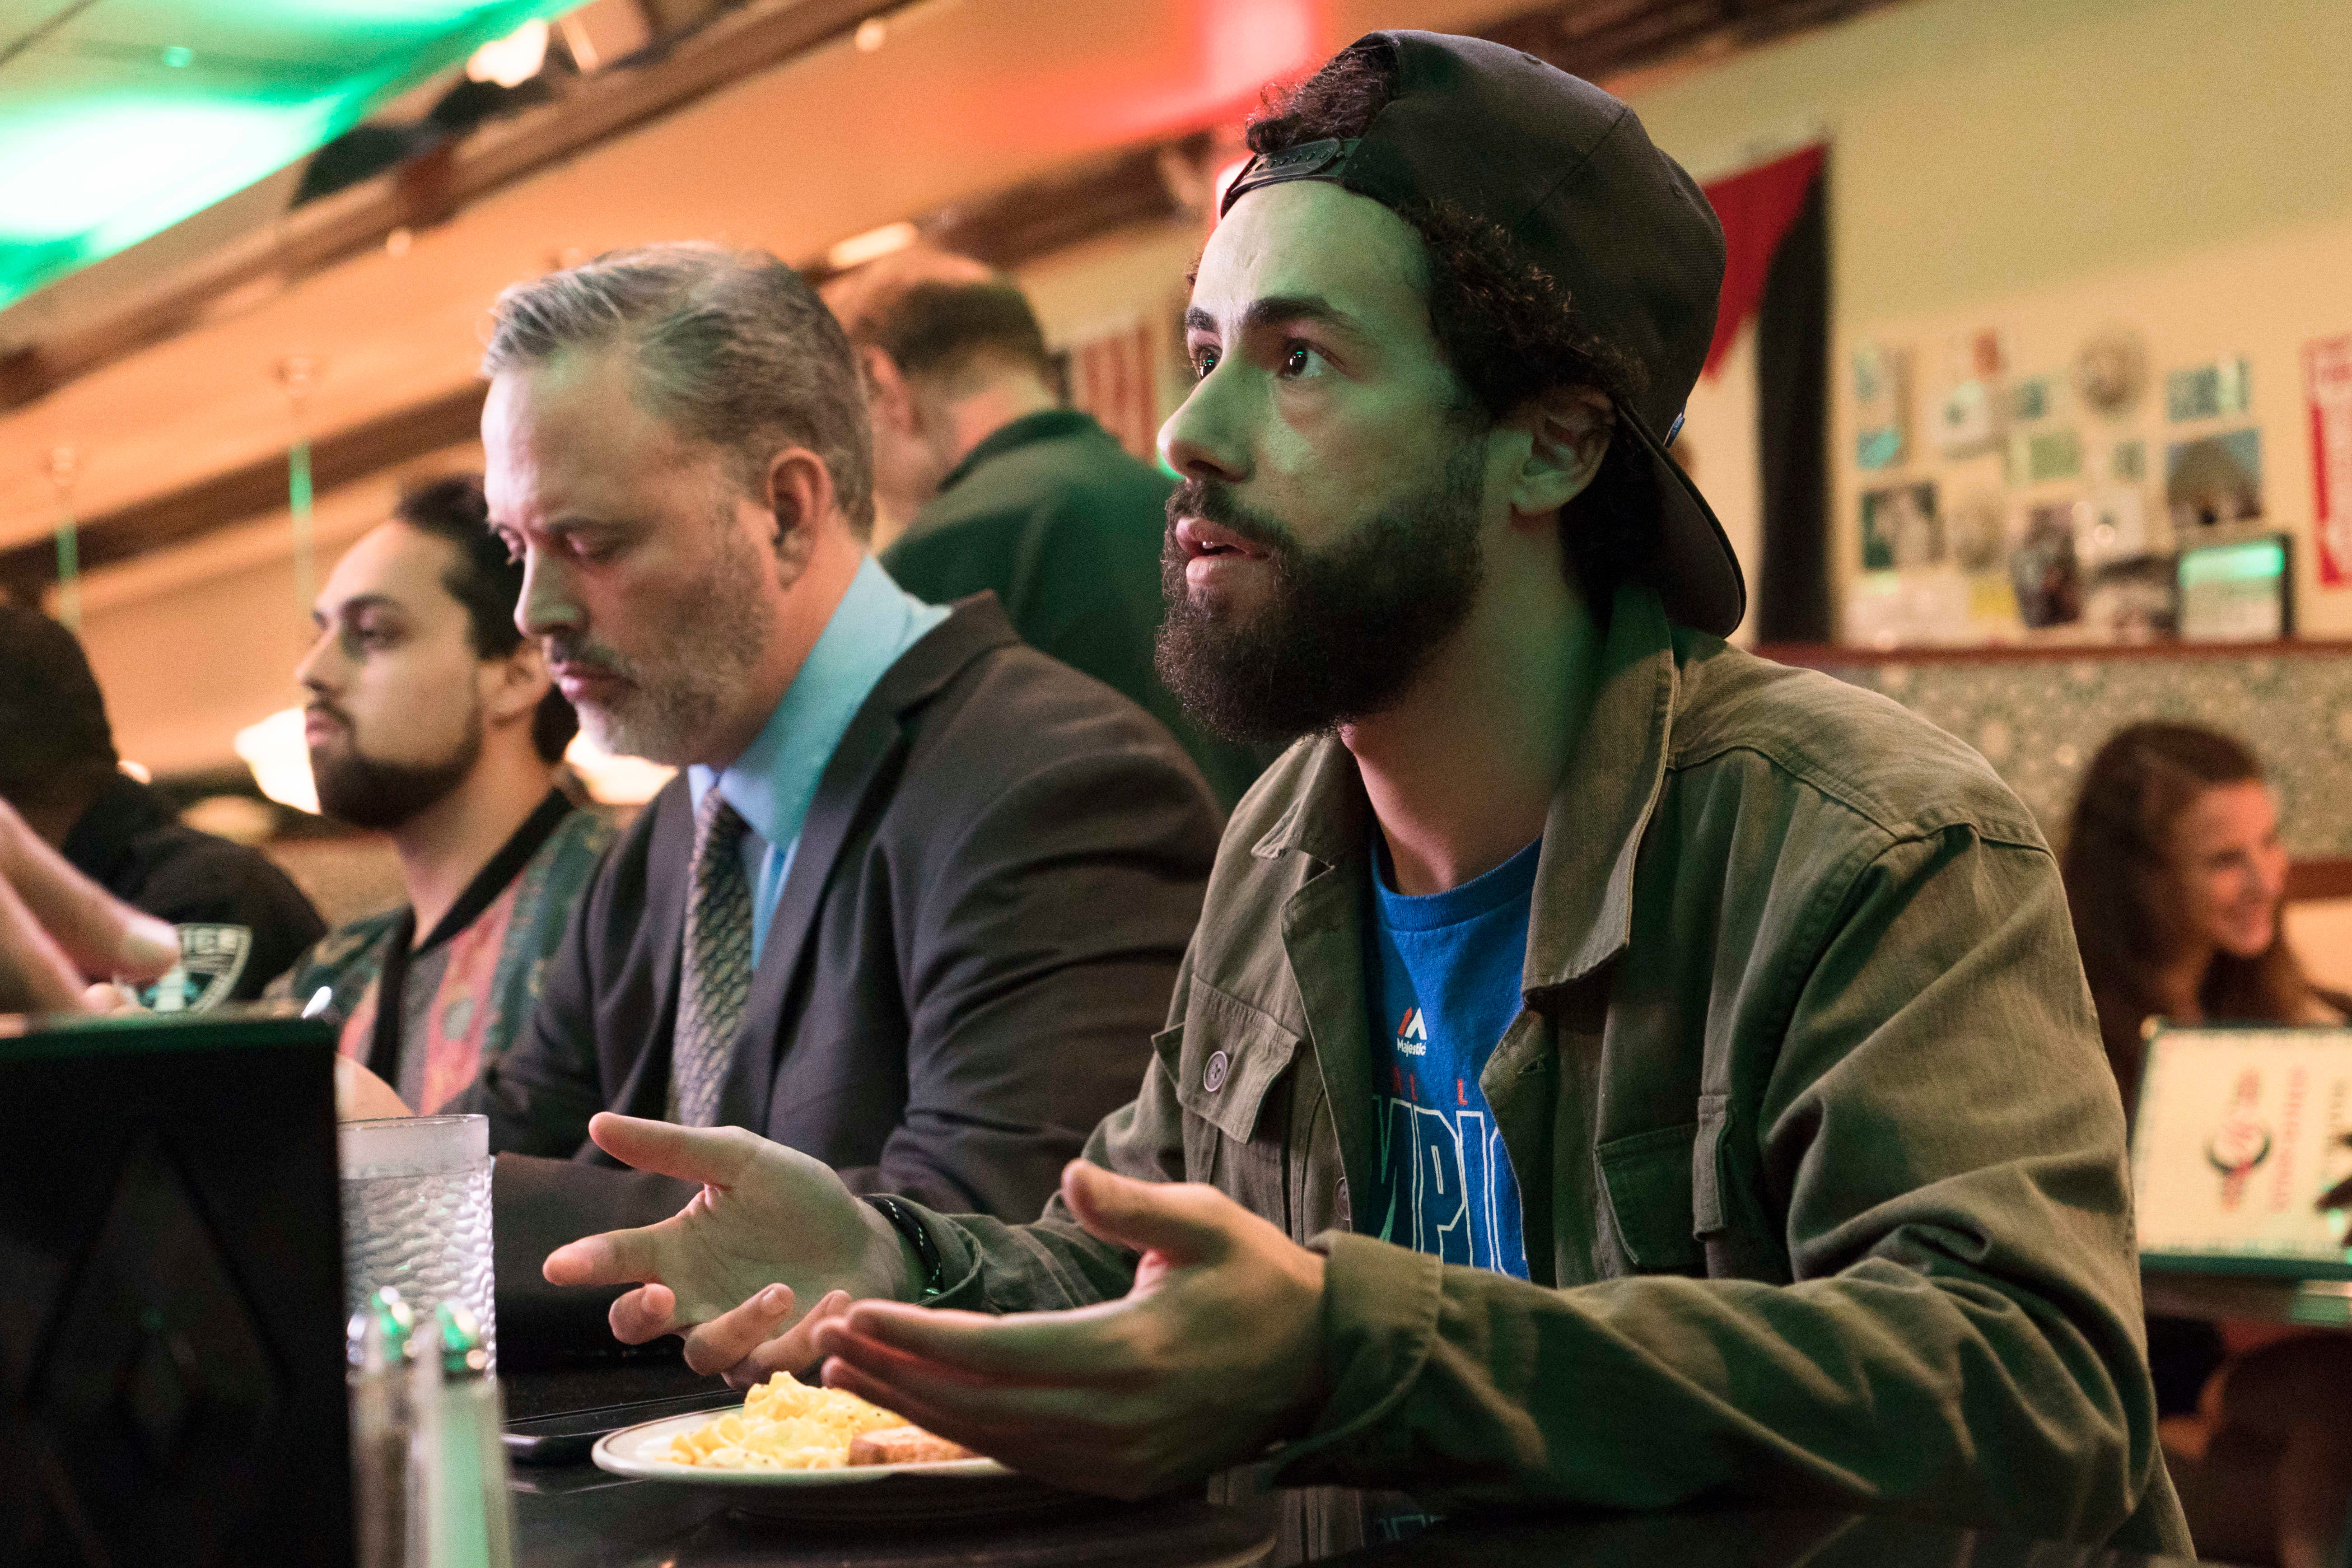 What's it like dating as a young Muslim American? Hulu's 'Ramy' shows hard, funny truths